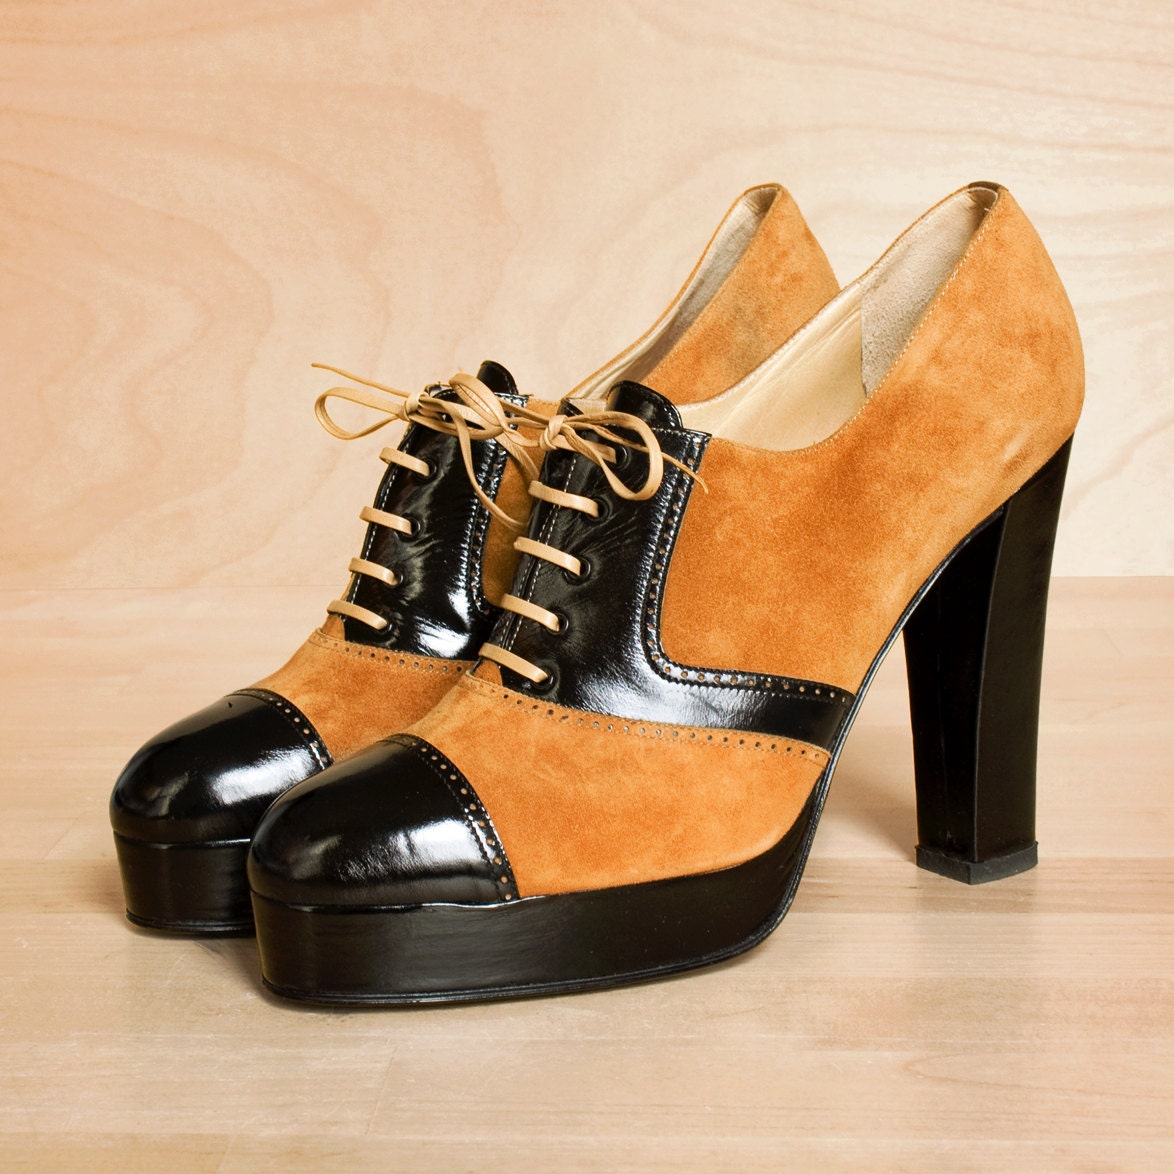 Italian deadstock shoes 9 9.5 / leather platform shoes / platforms 9